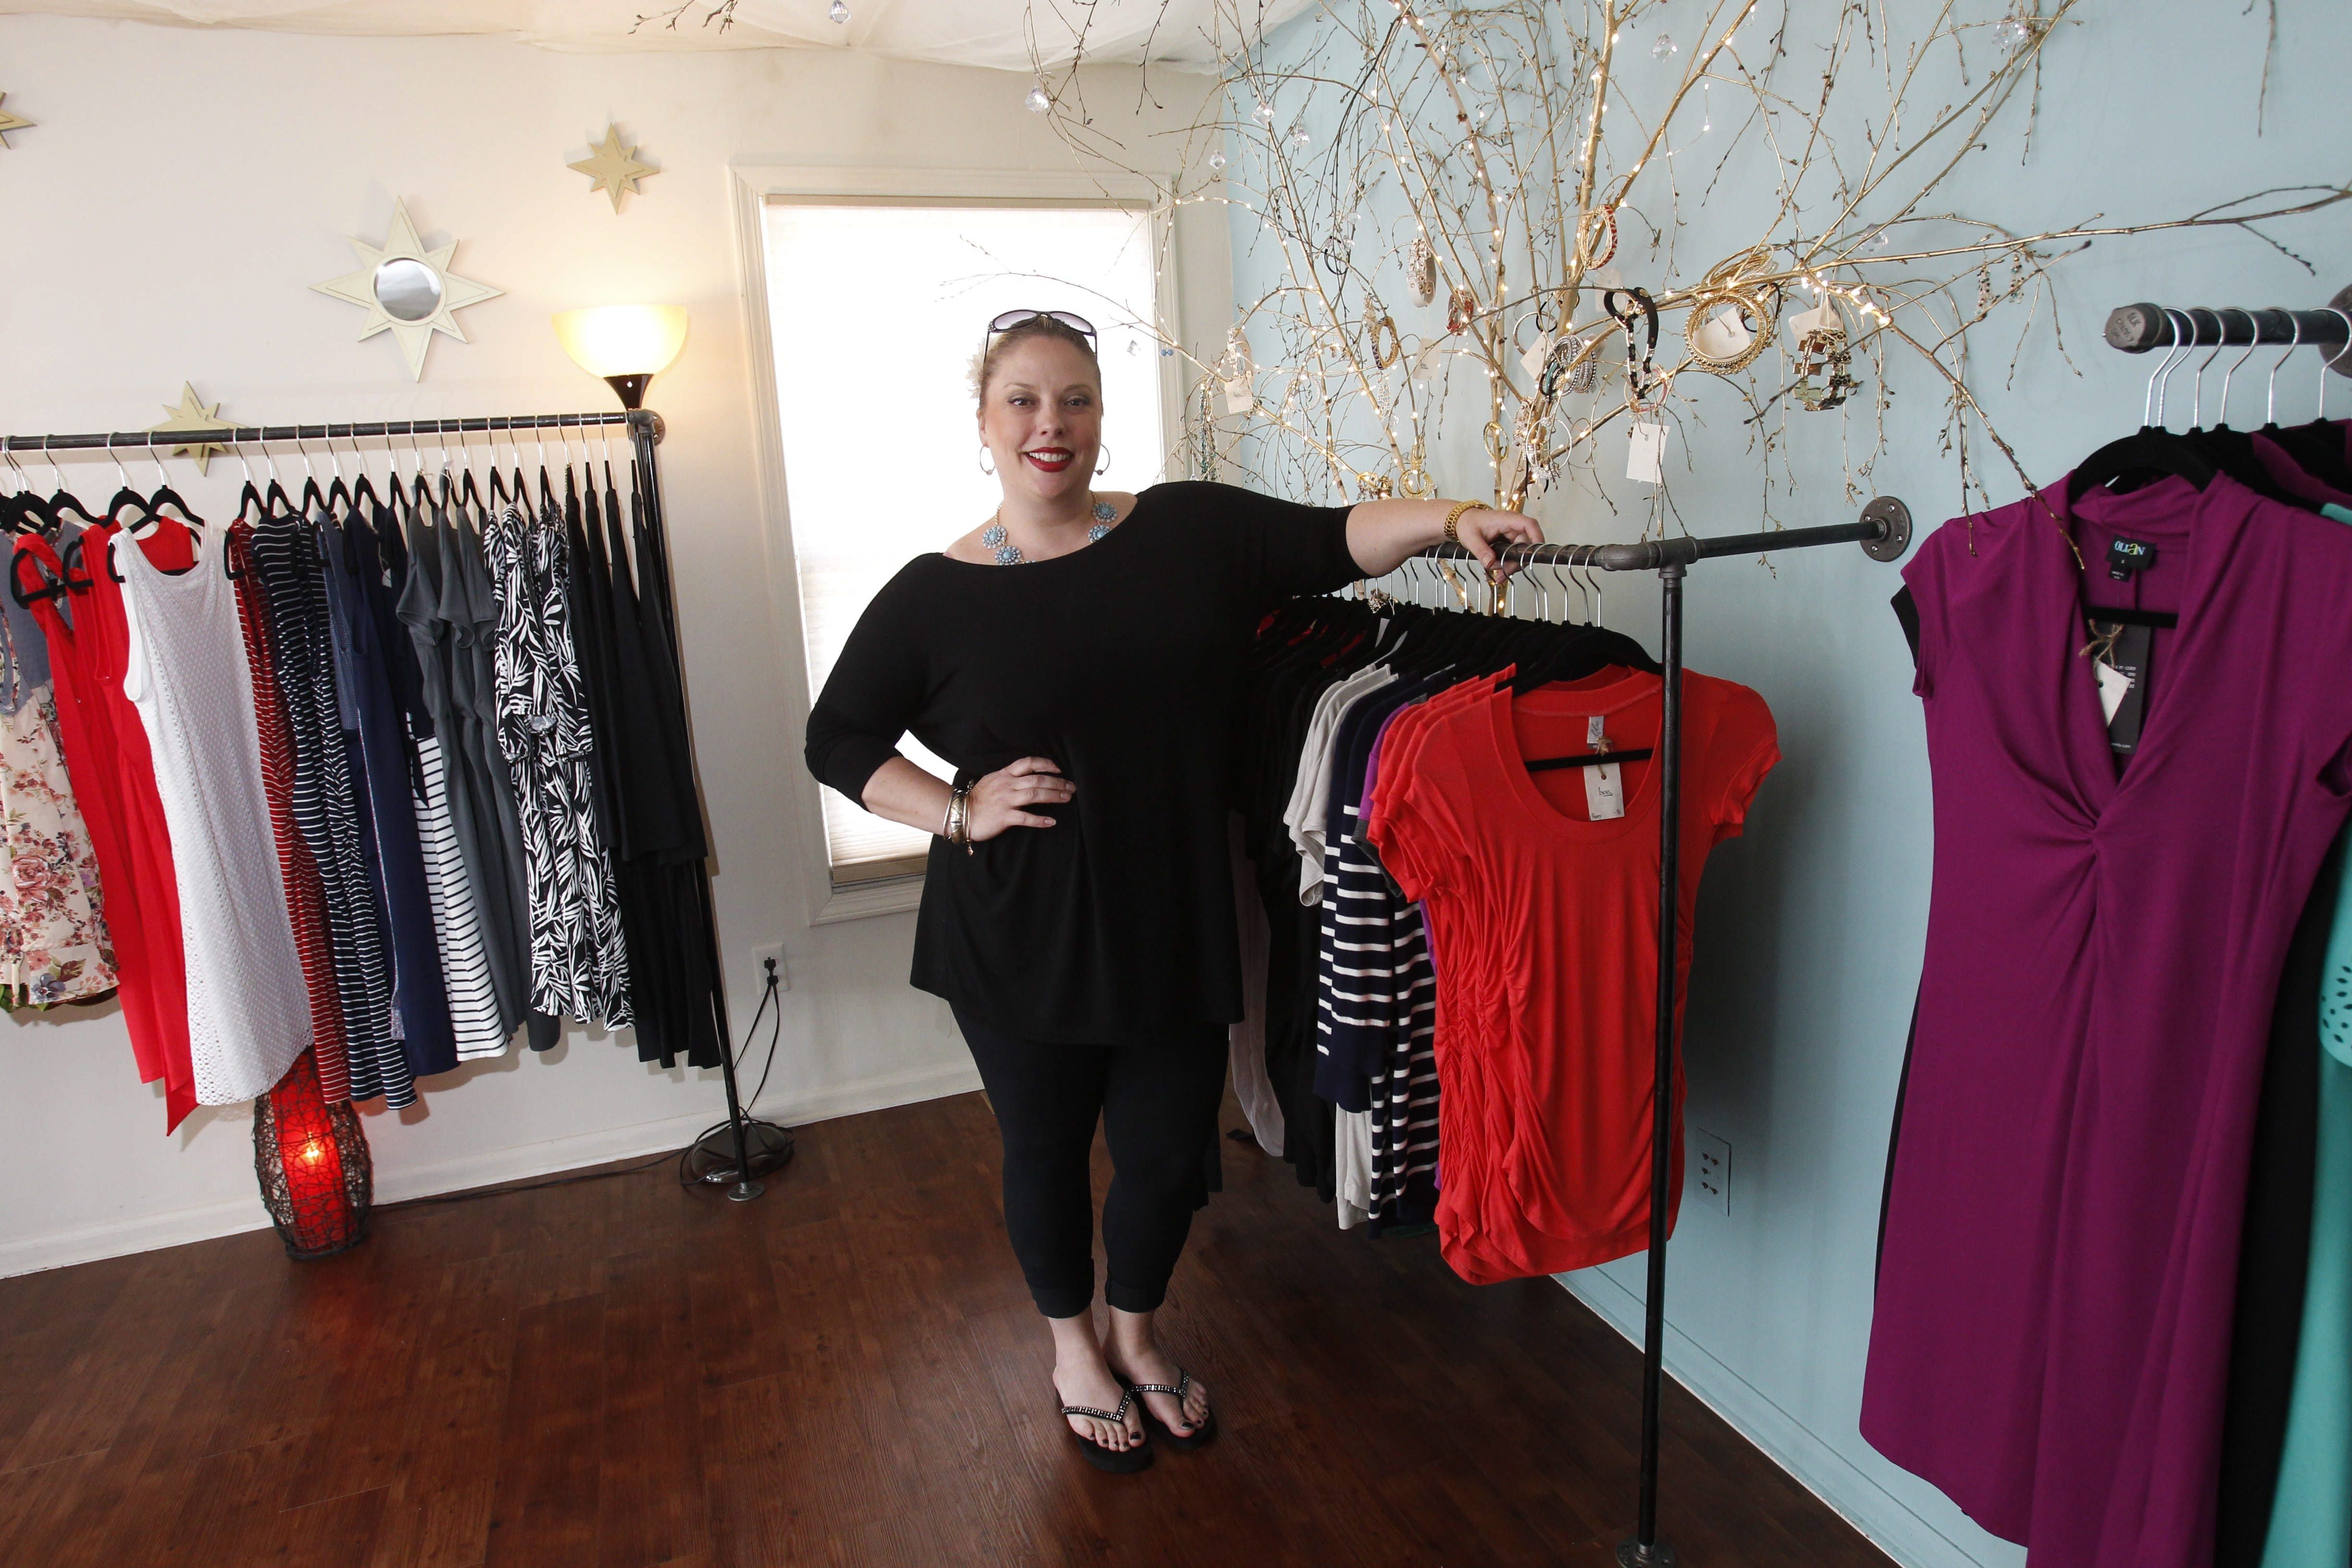 Lou Ann Cane is the owner of Bee Maternal Luxe Maternity on Main St. in Williamsville.  She sells maternity clothing and other related products.  Photo taken, Monday, June 23, 2014.  (Sharon Cantillon/Buffalo News)